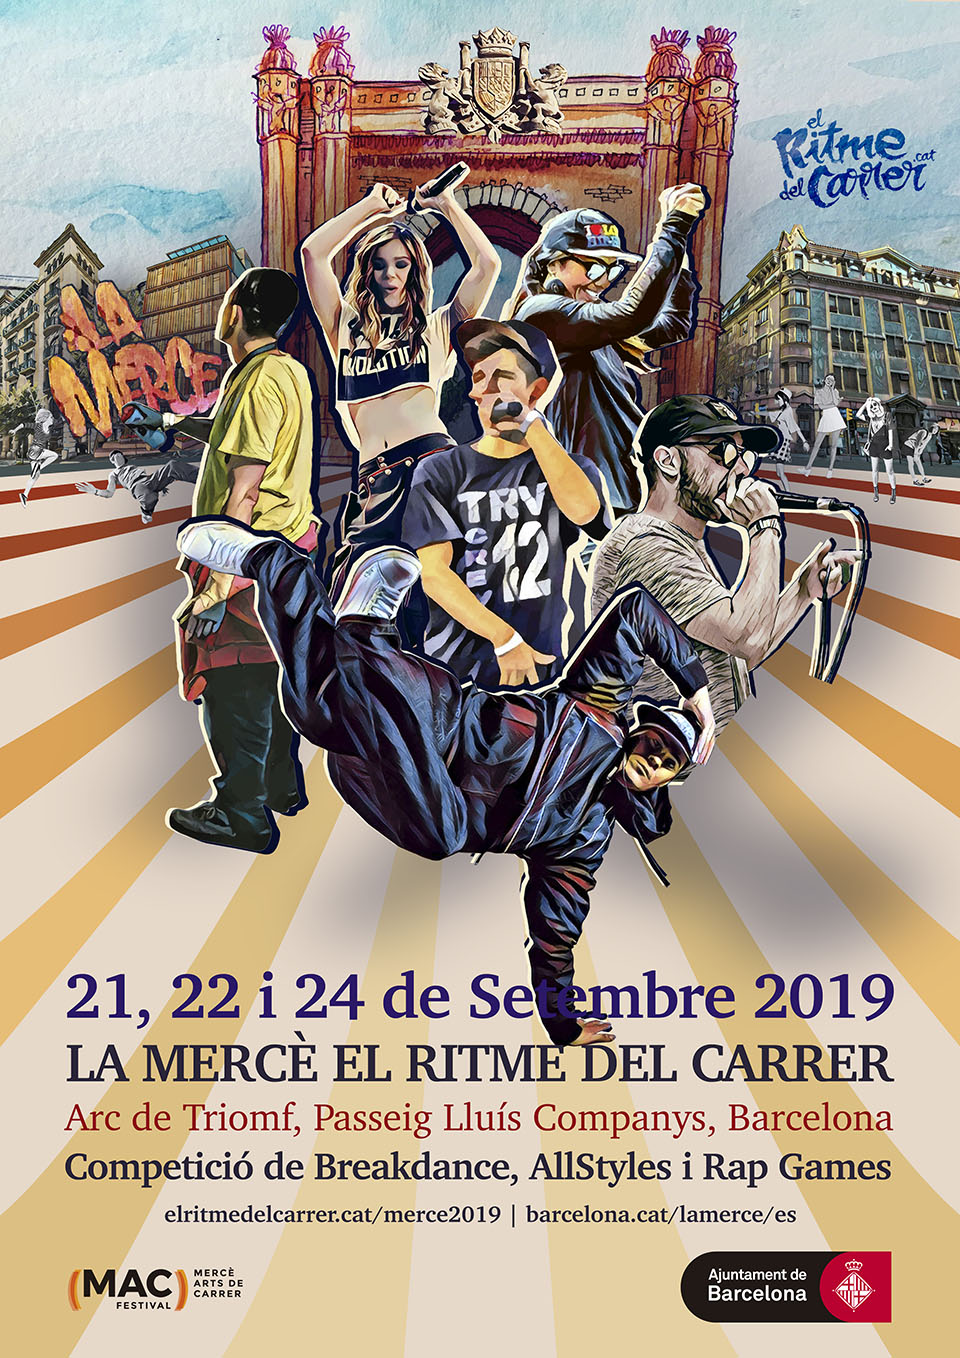 Cartel A3 ERDC Merce 2019 Arc del Triomf lowres